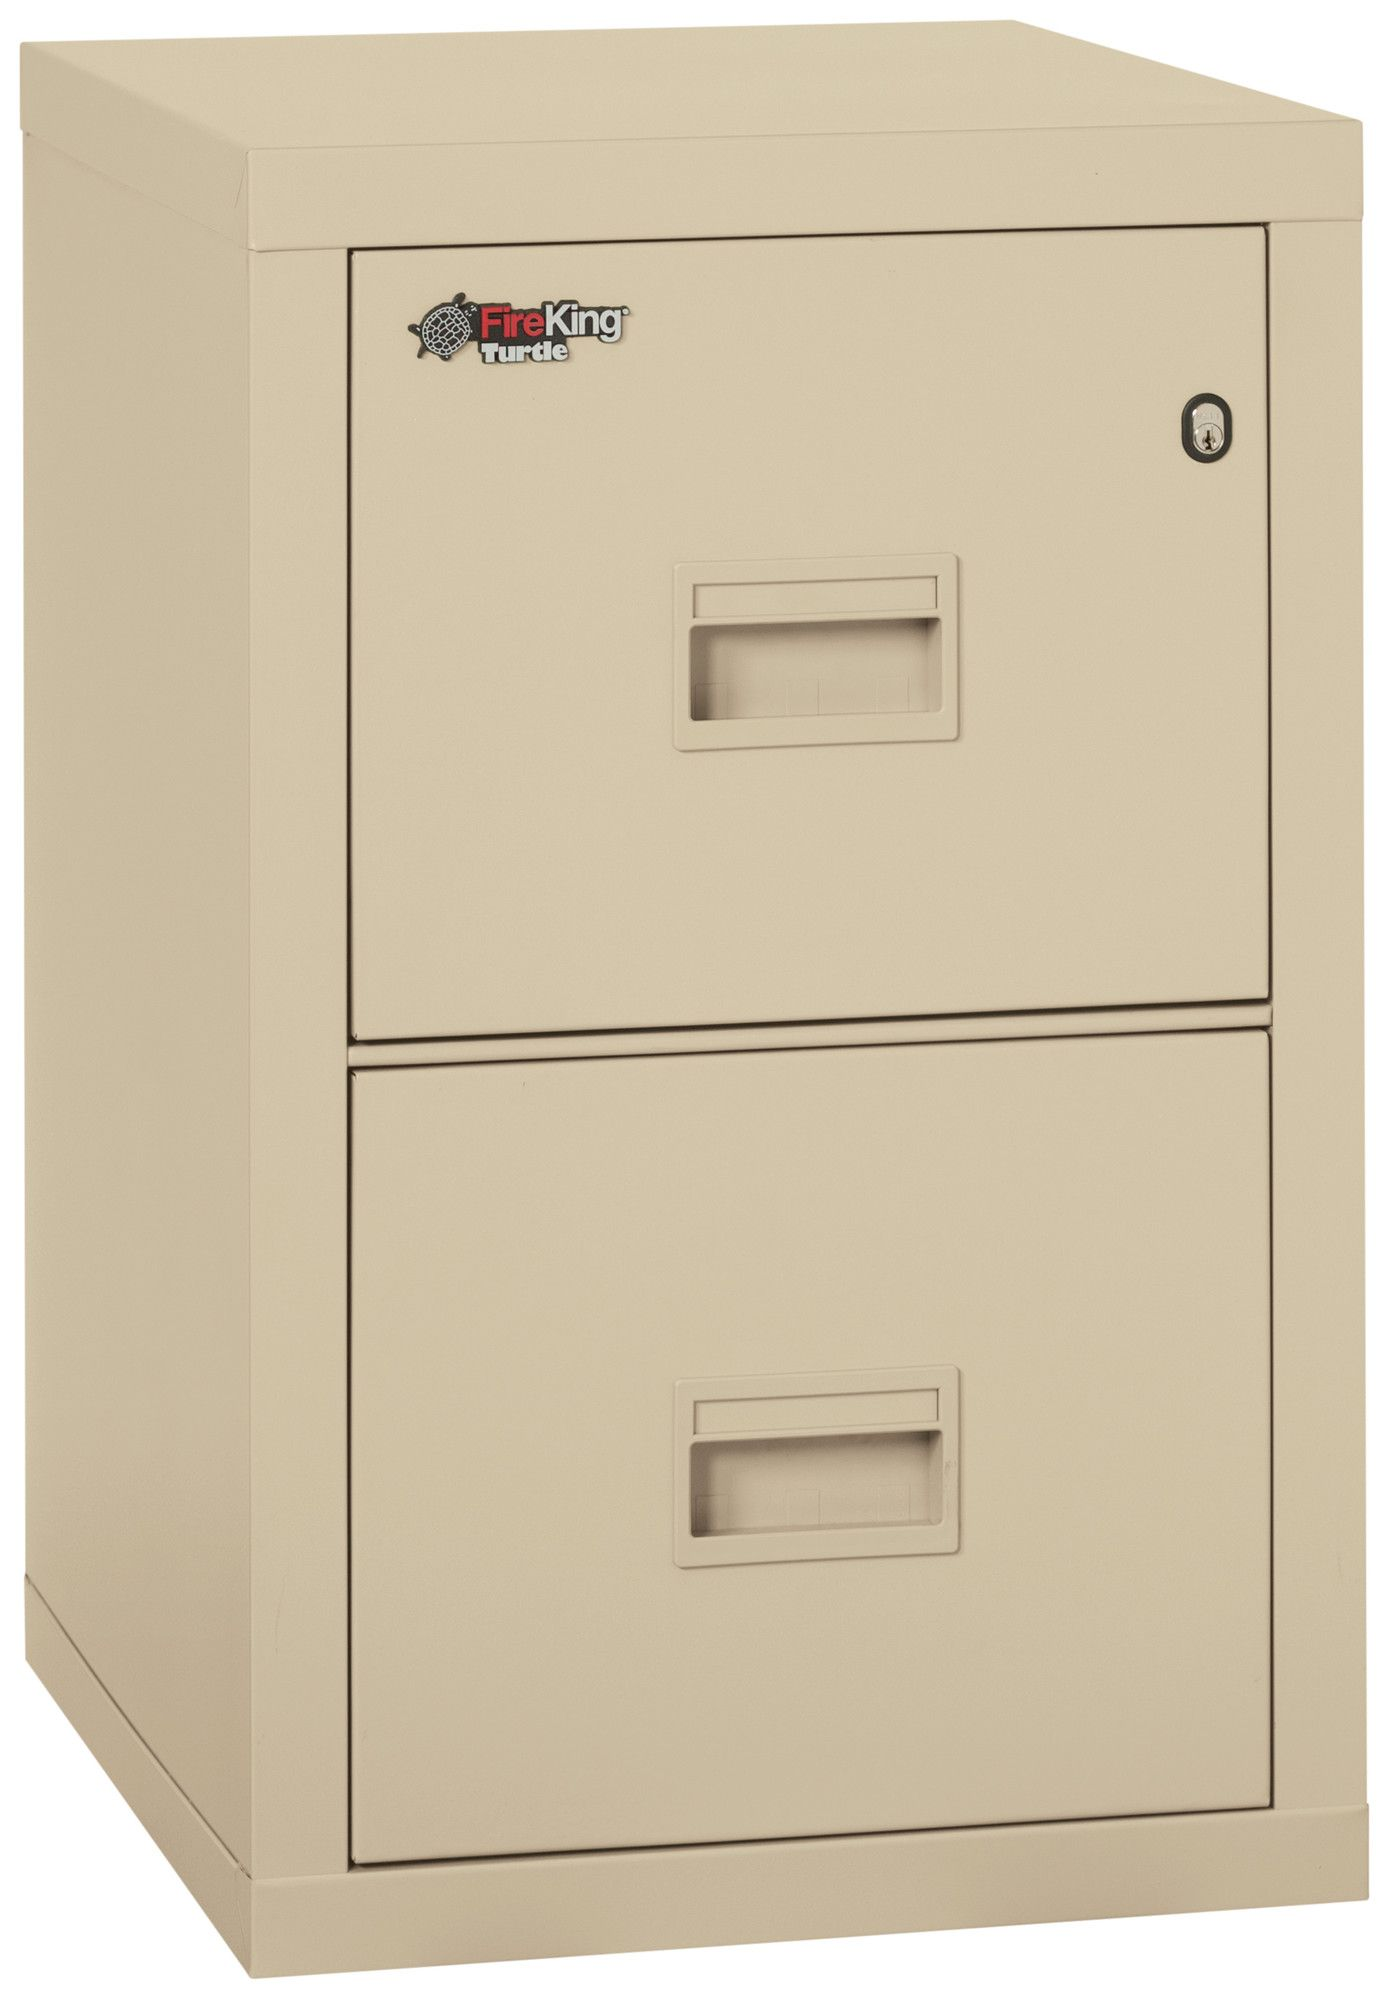 Turtle Fireproof 2 Drawer Vertical File Cabinet Filing Cabinet Drawer Filing Cabinet Four Drawer File Cabinet